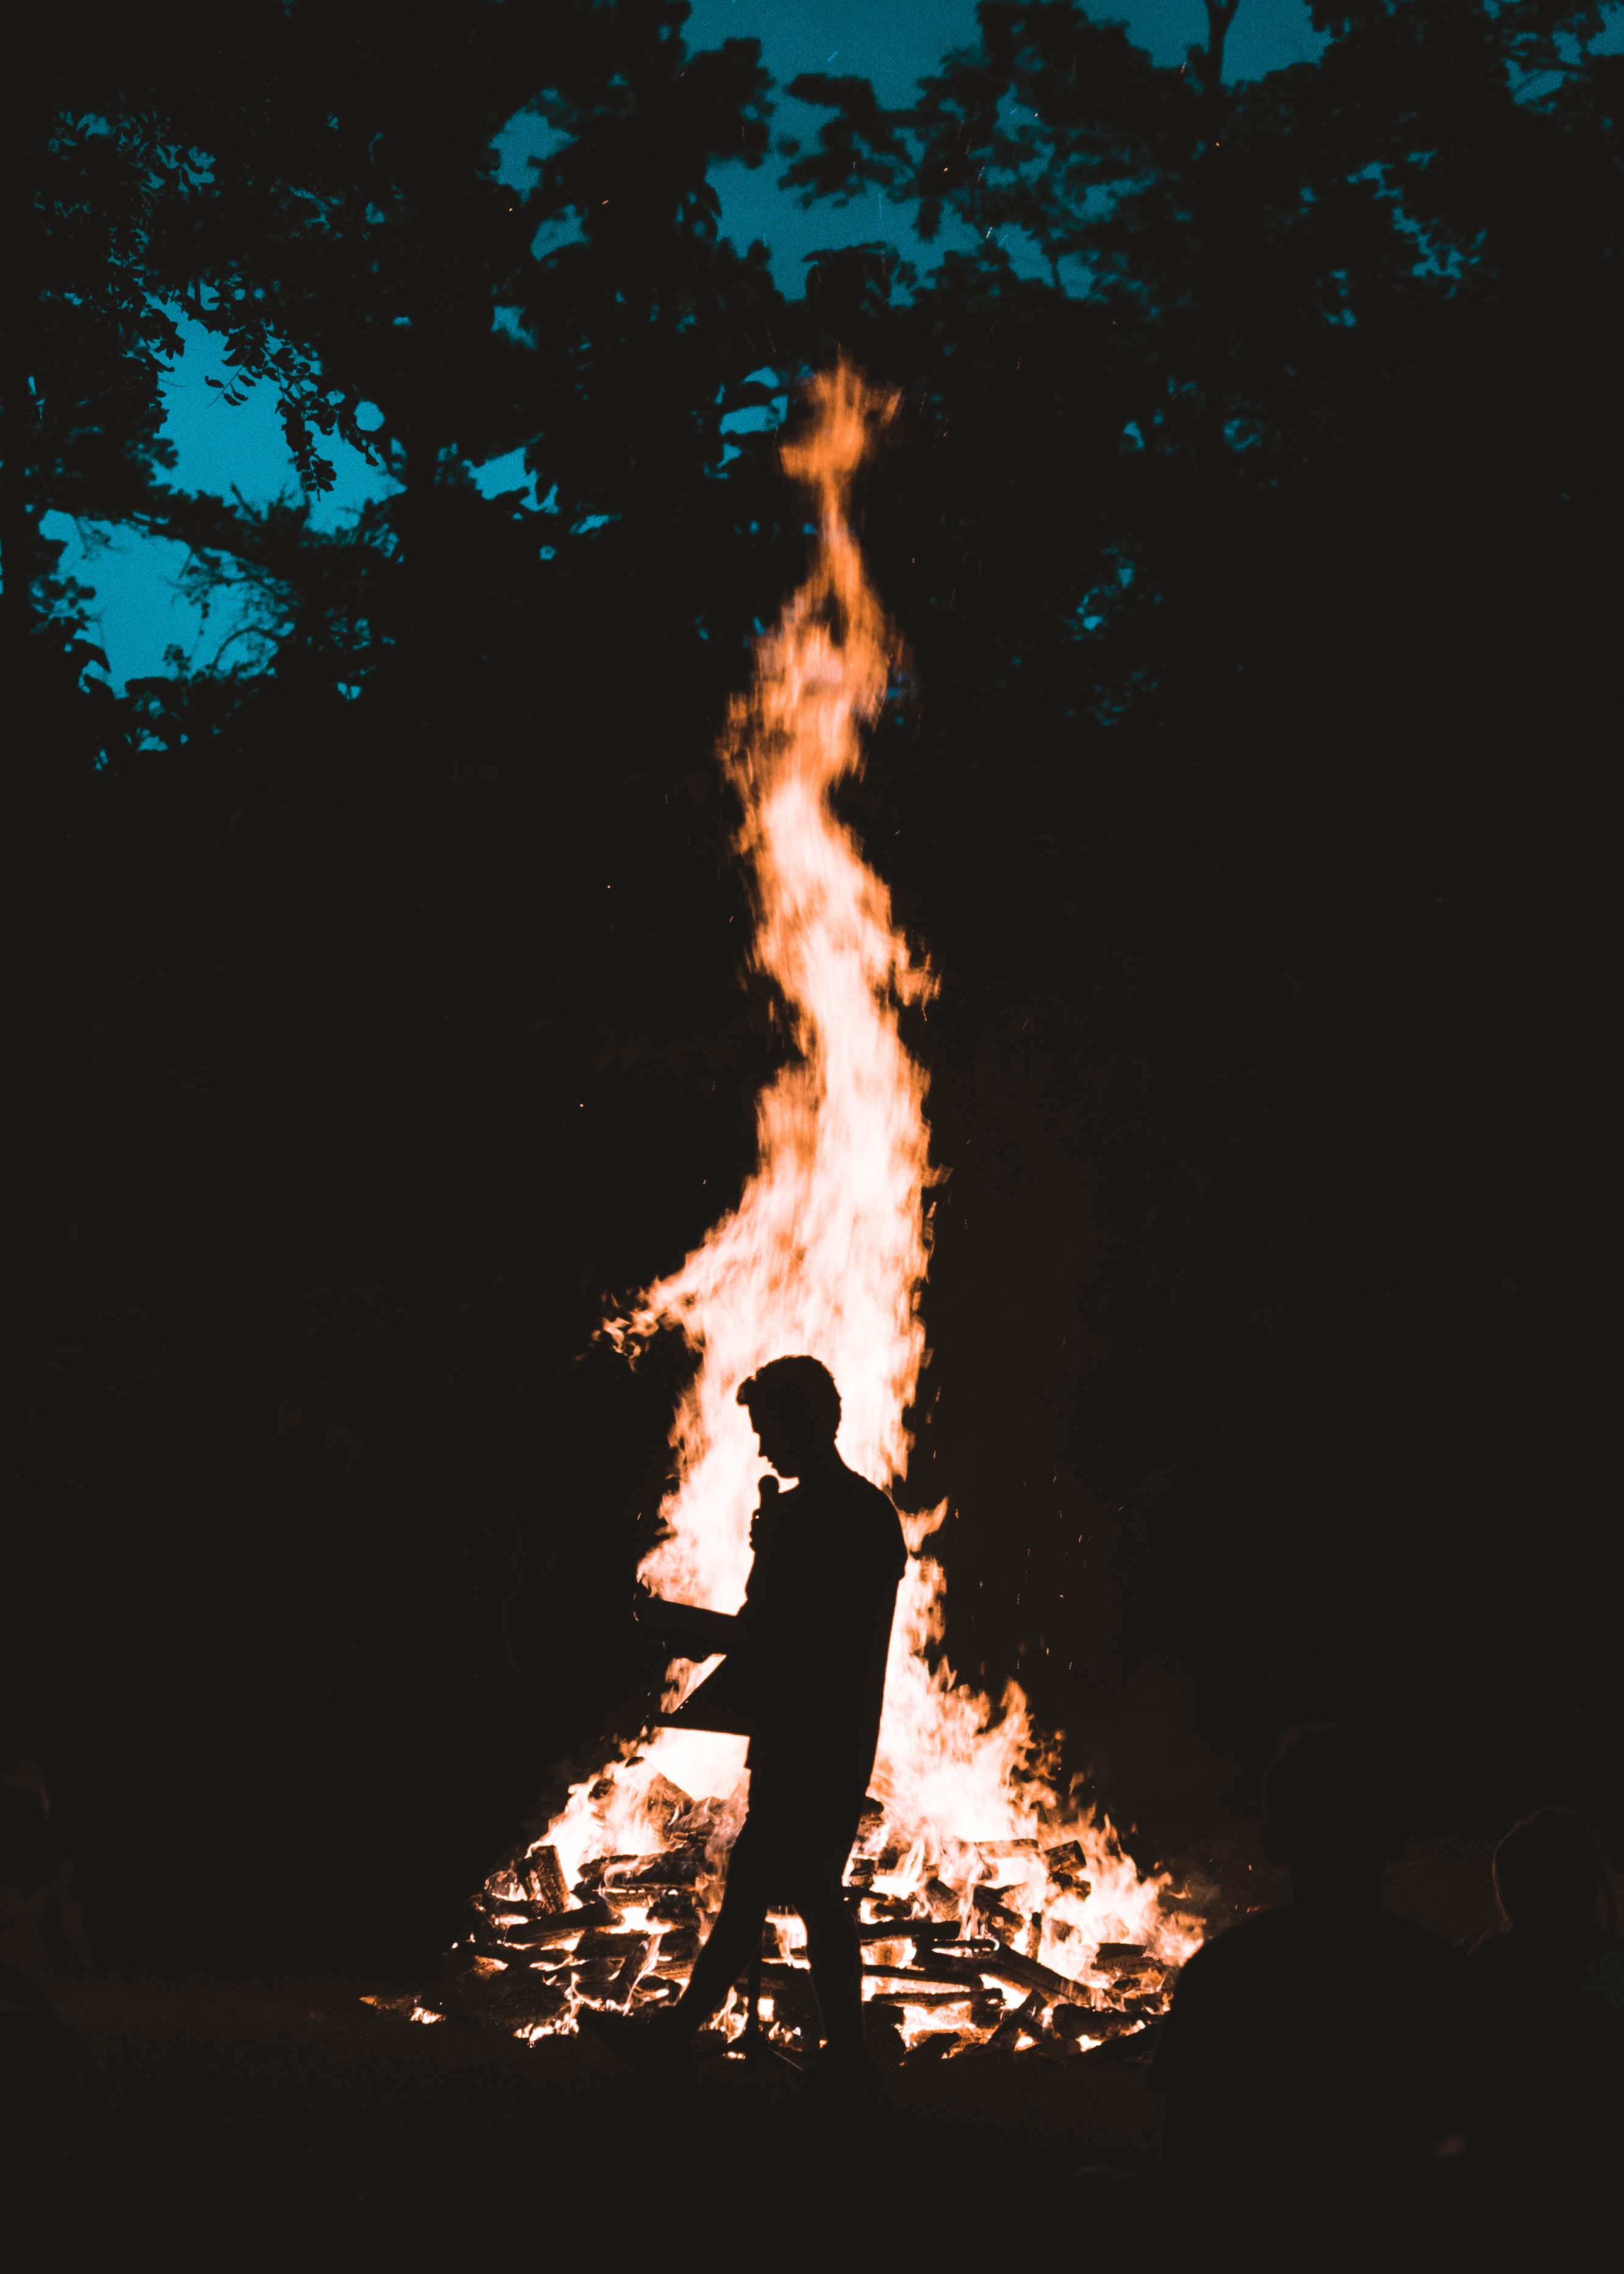 silhouette of man in front of bonfire